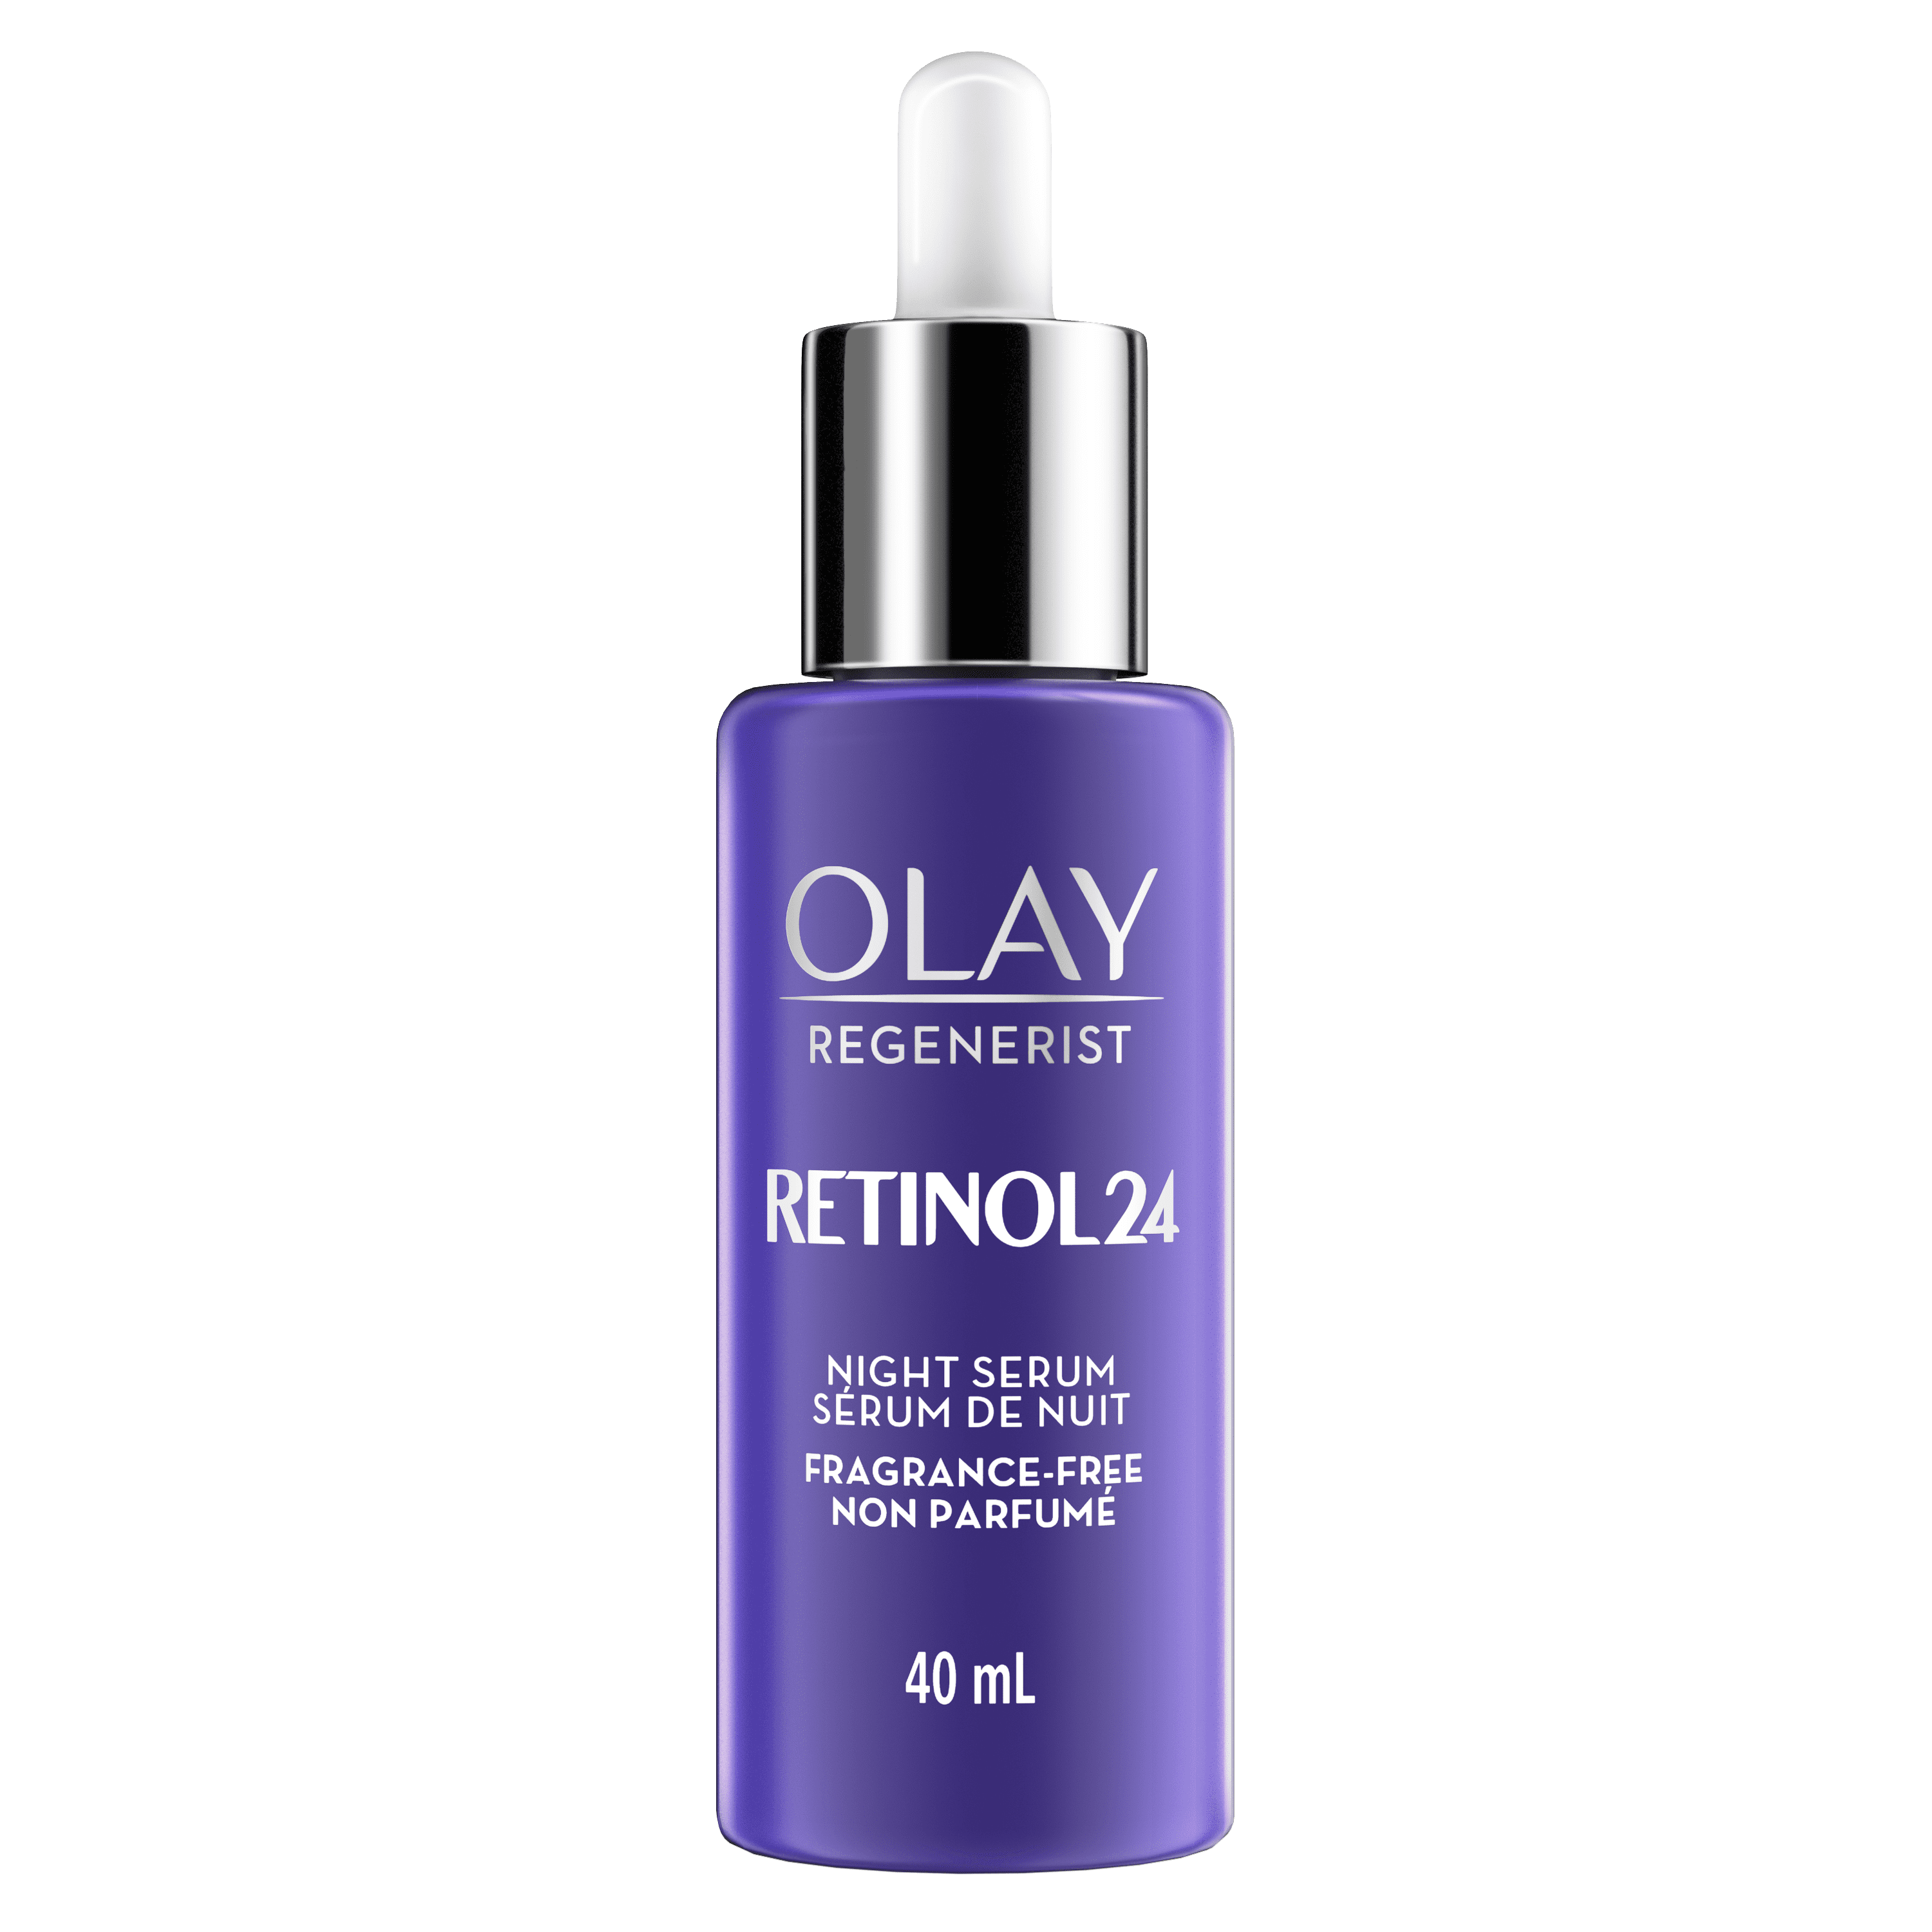 Olay Regenerist Retinol24 Night Facial Serum 40 mL